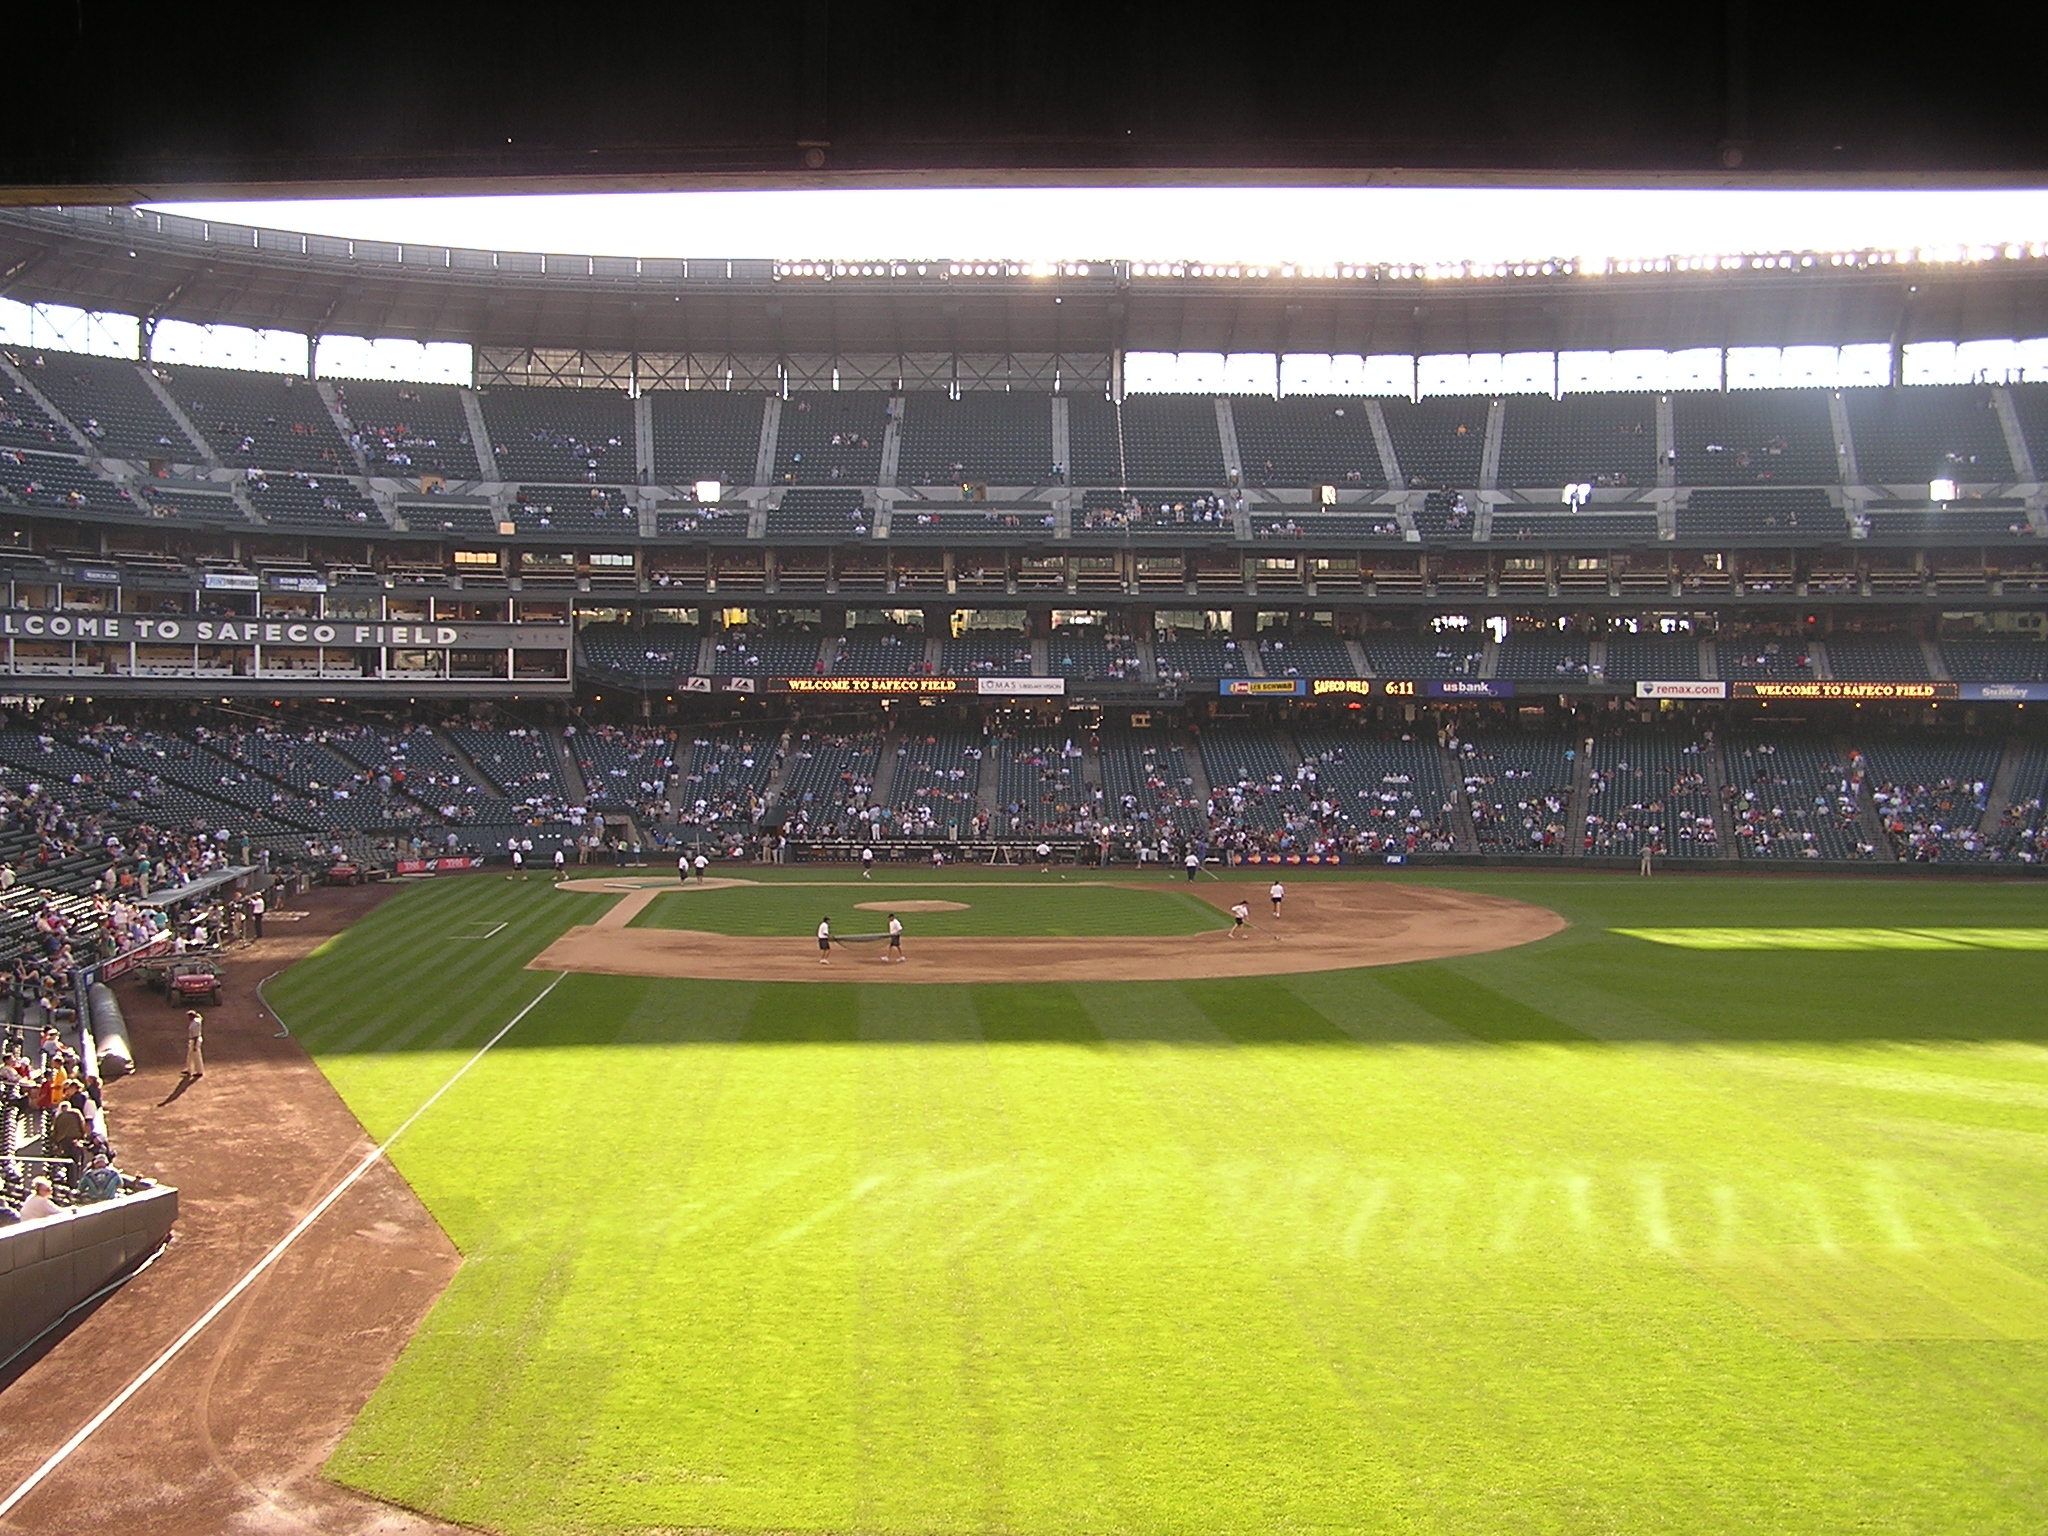 The view from Right Field - Safeco Field